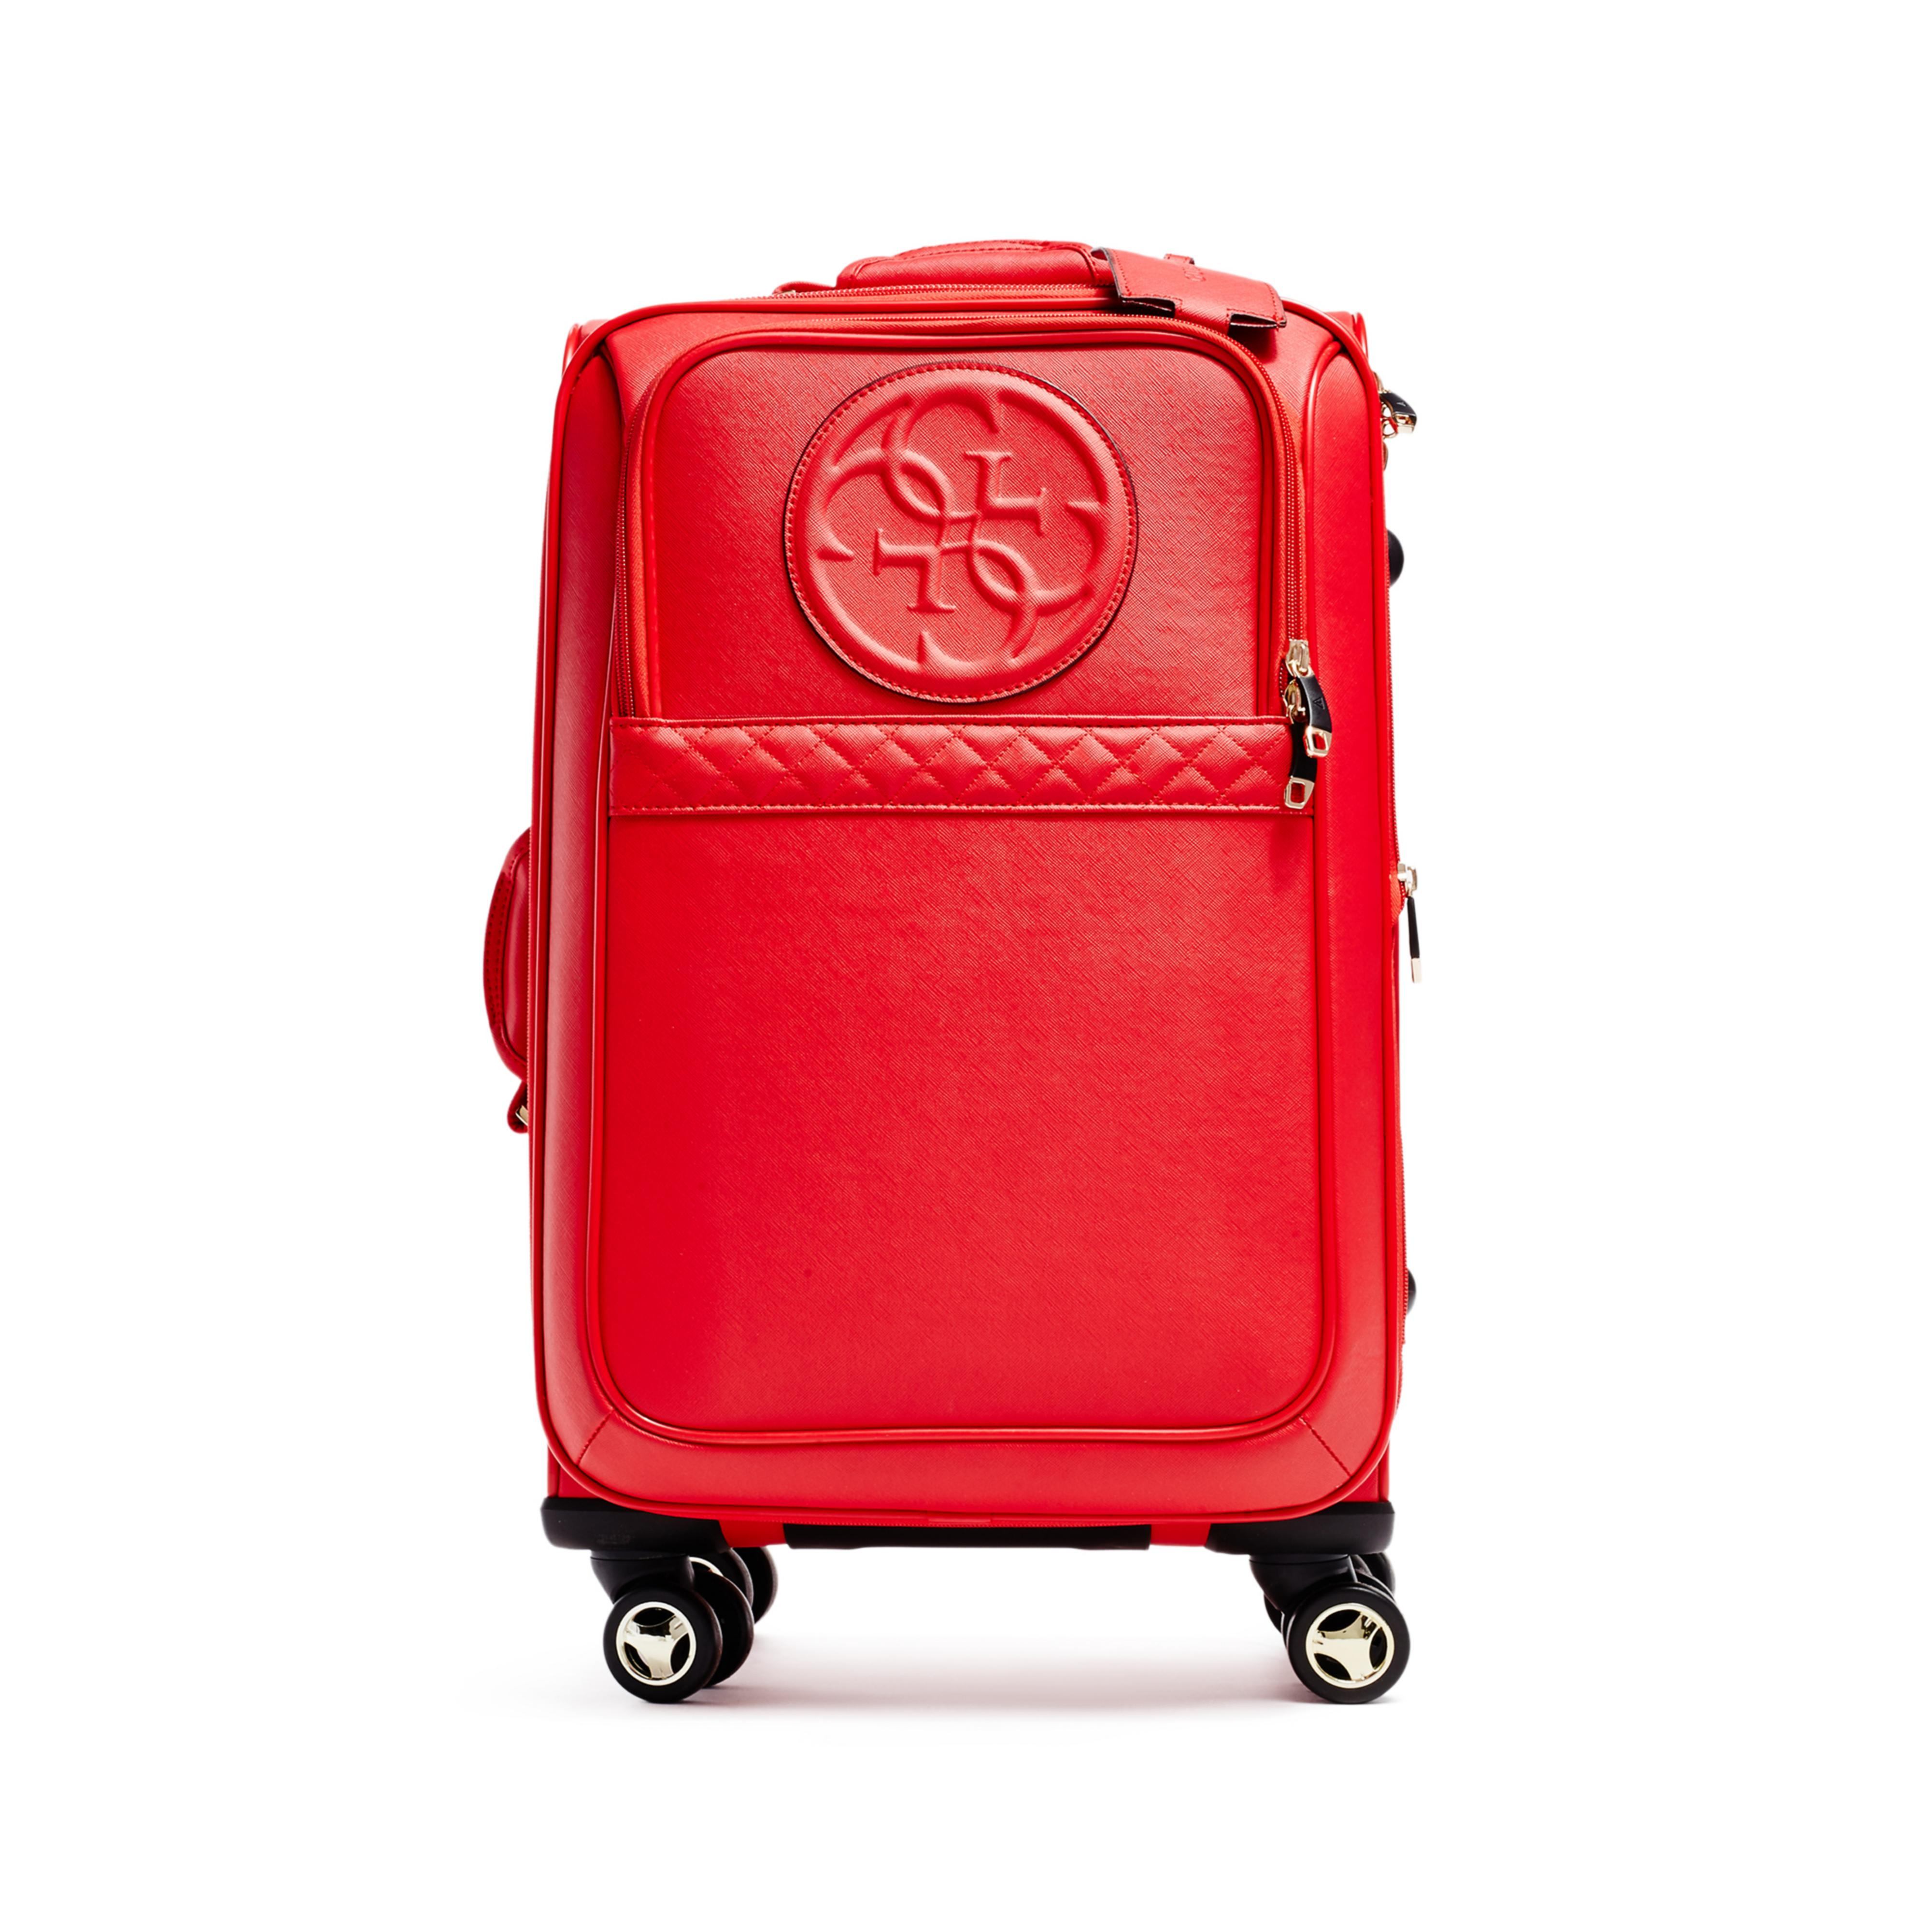 Guess Luggage Bags Online Confederated Tribes Of The